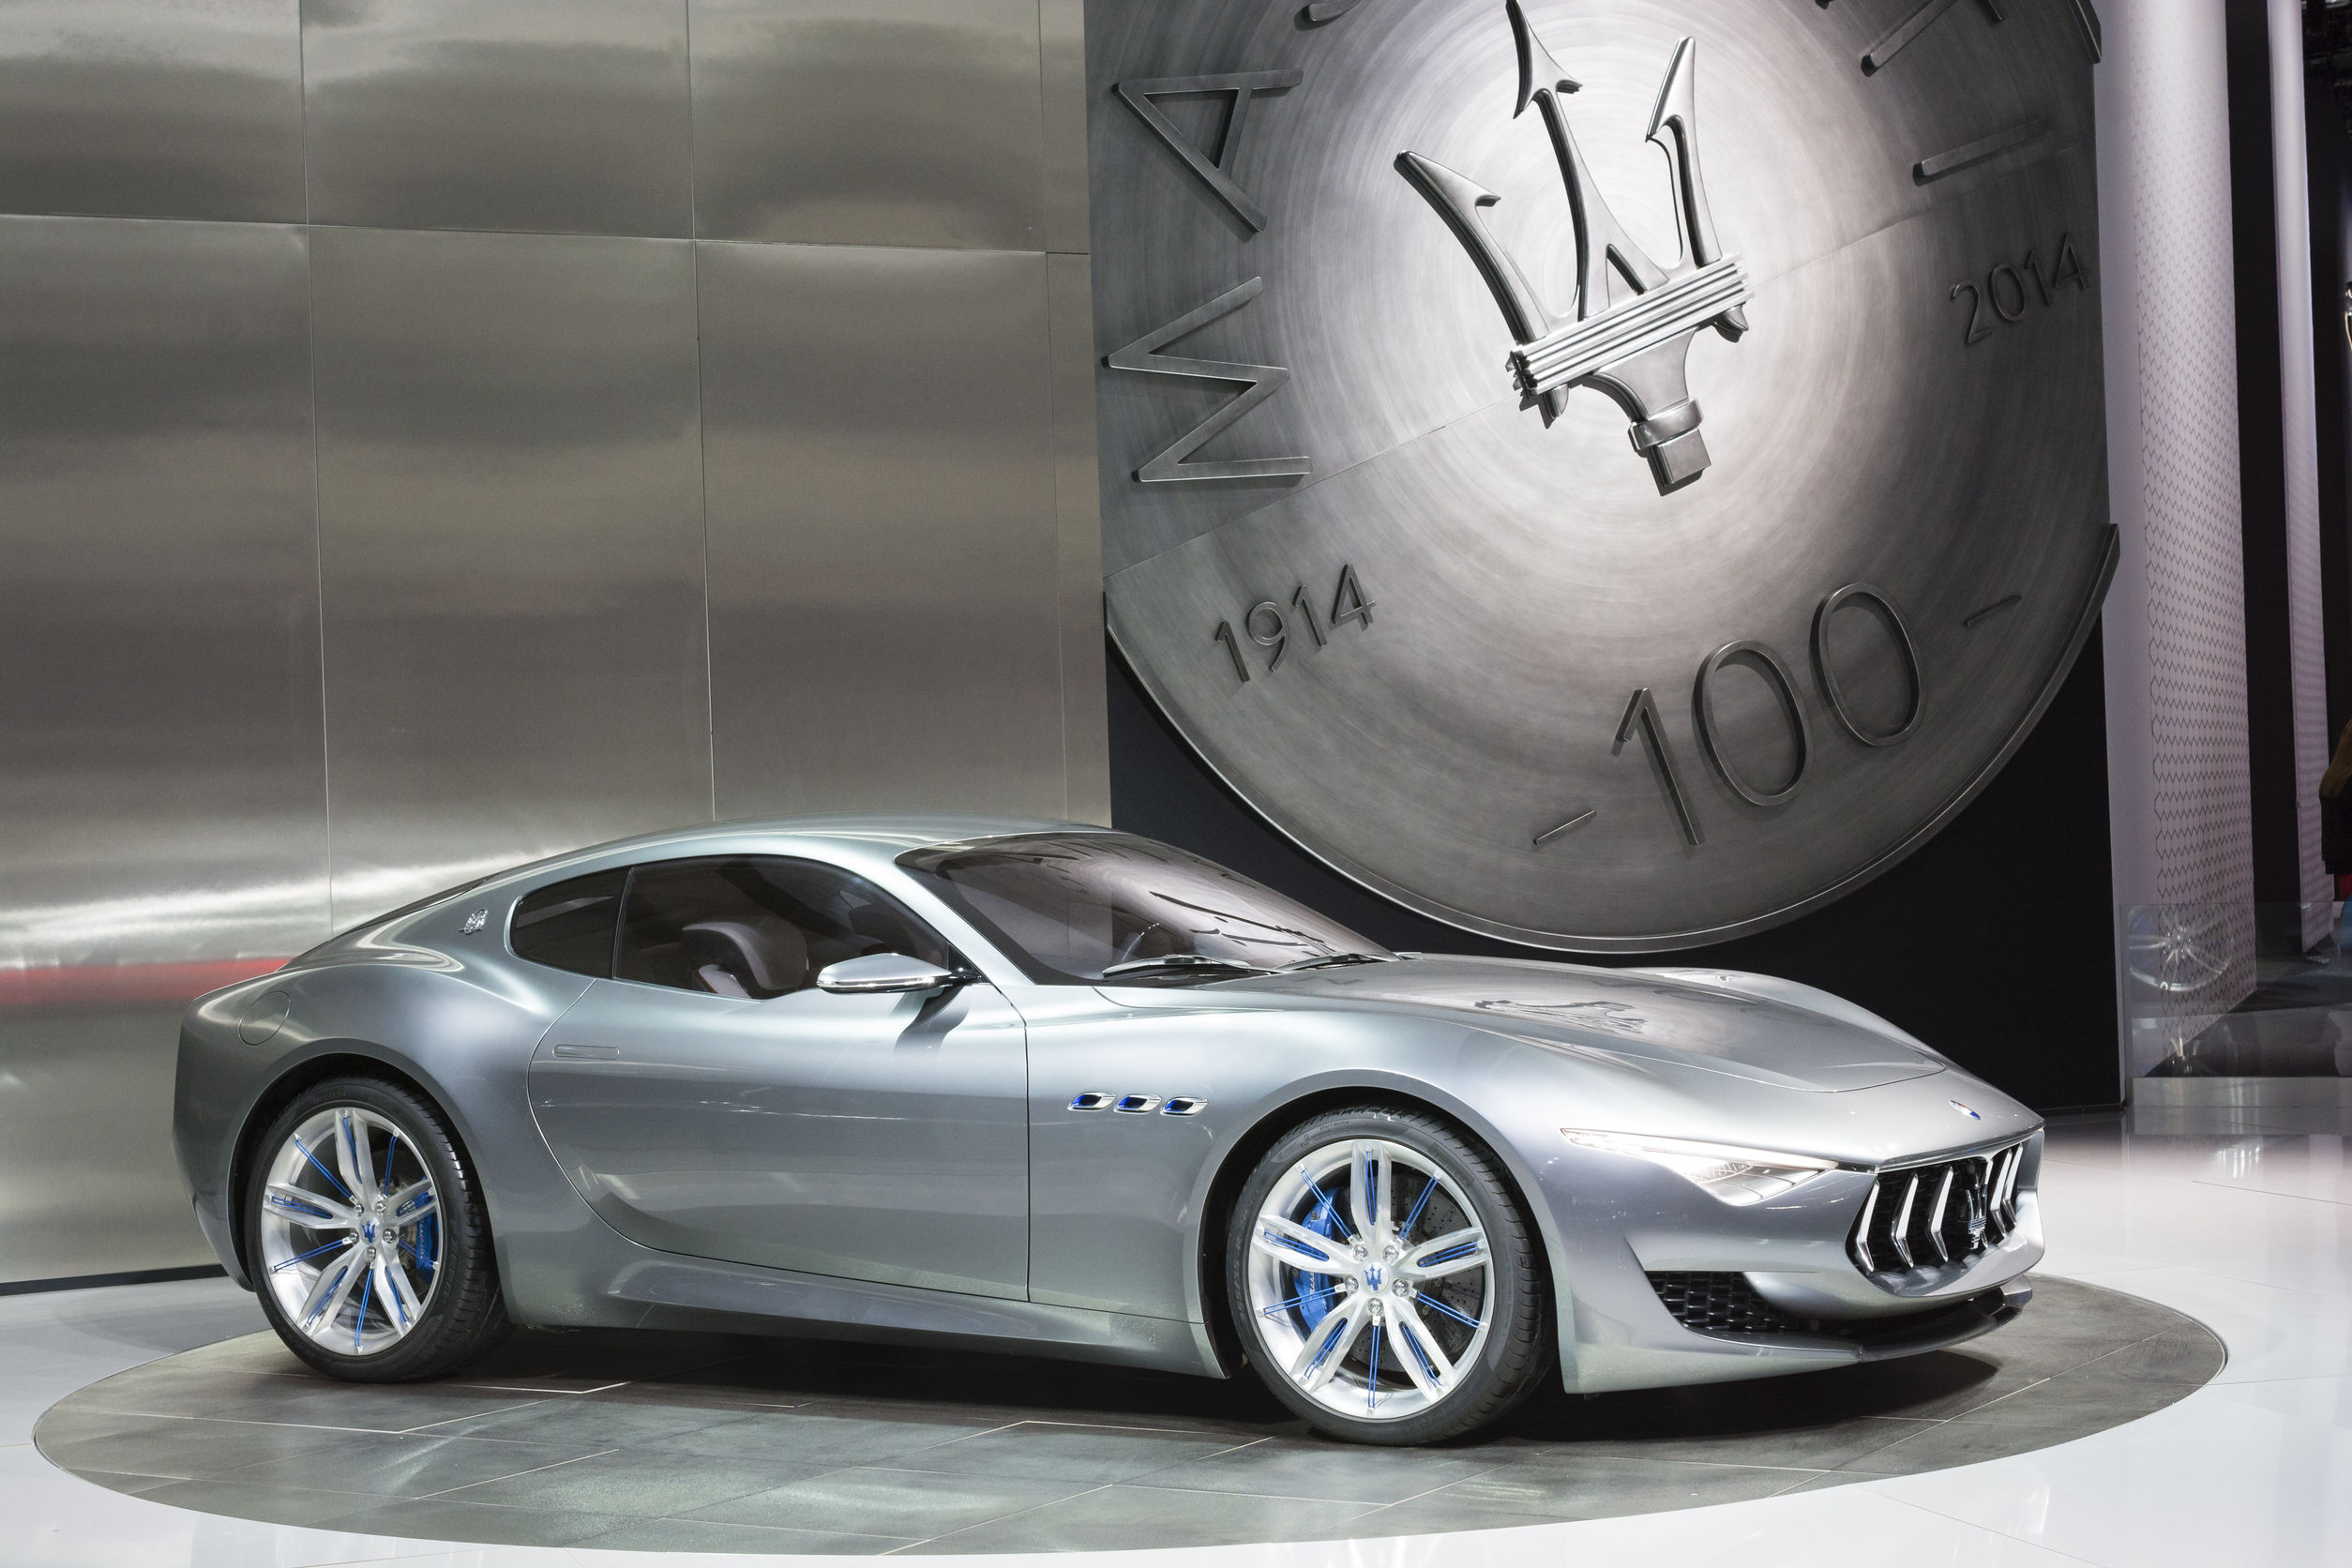 Italian Luxury Car Maserati Sees Sales Up Almost 6 Fold In Korea